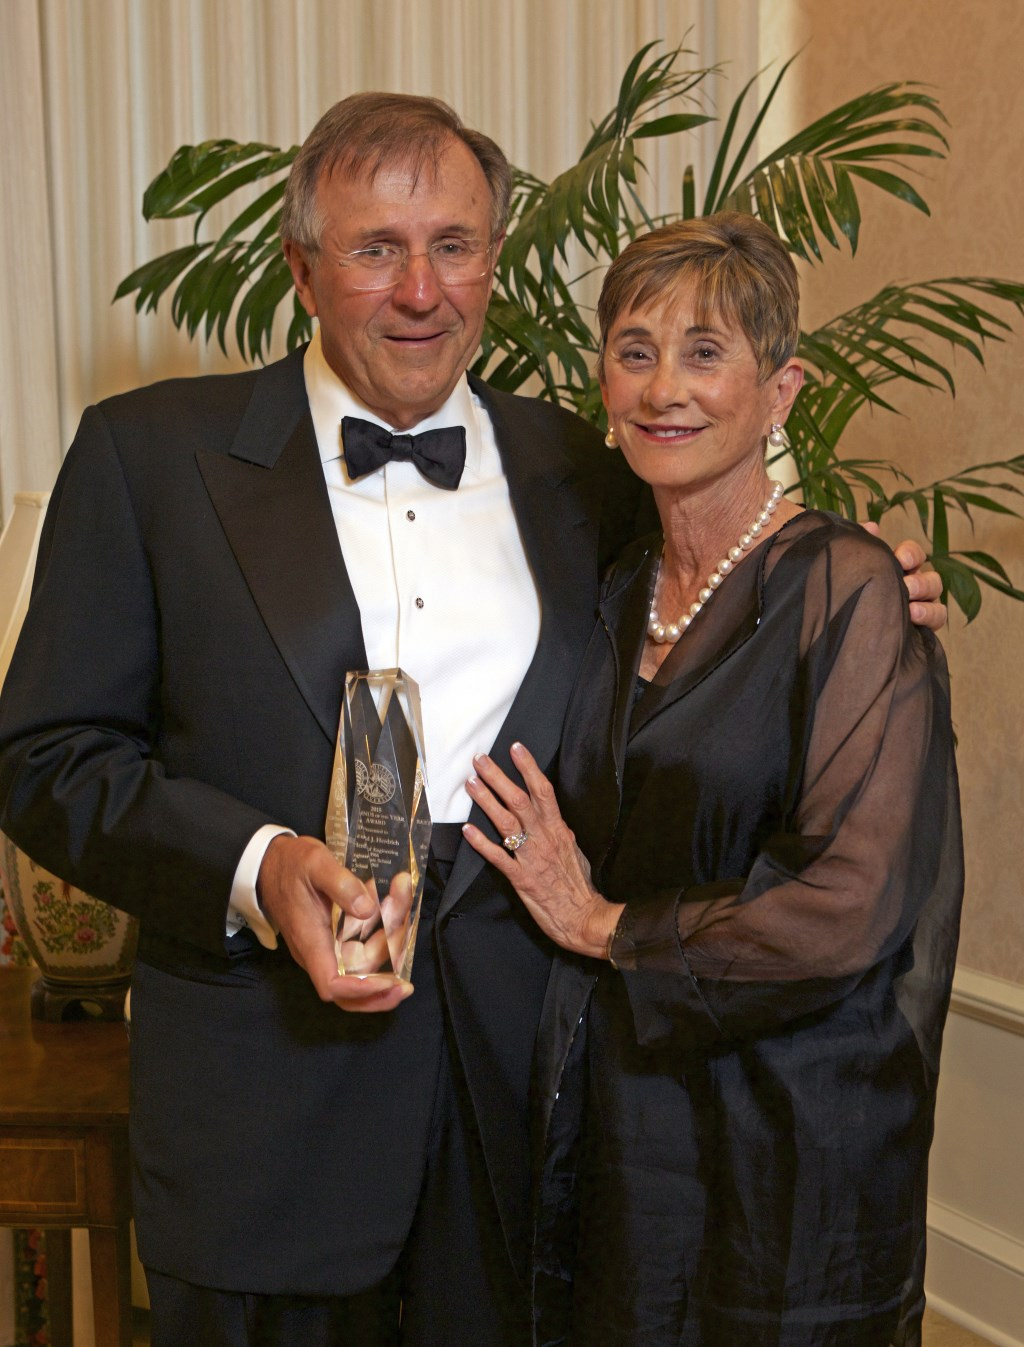 Marquette alumni couple give $3.5 million gift for scholarship aid